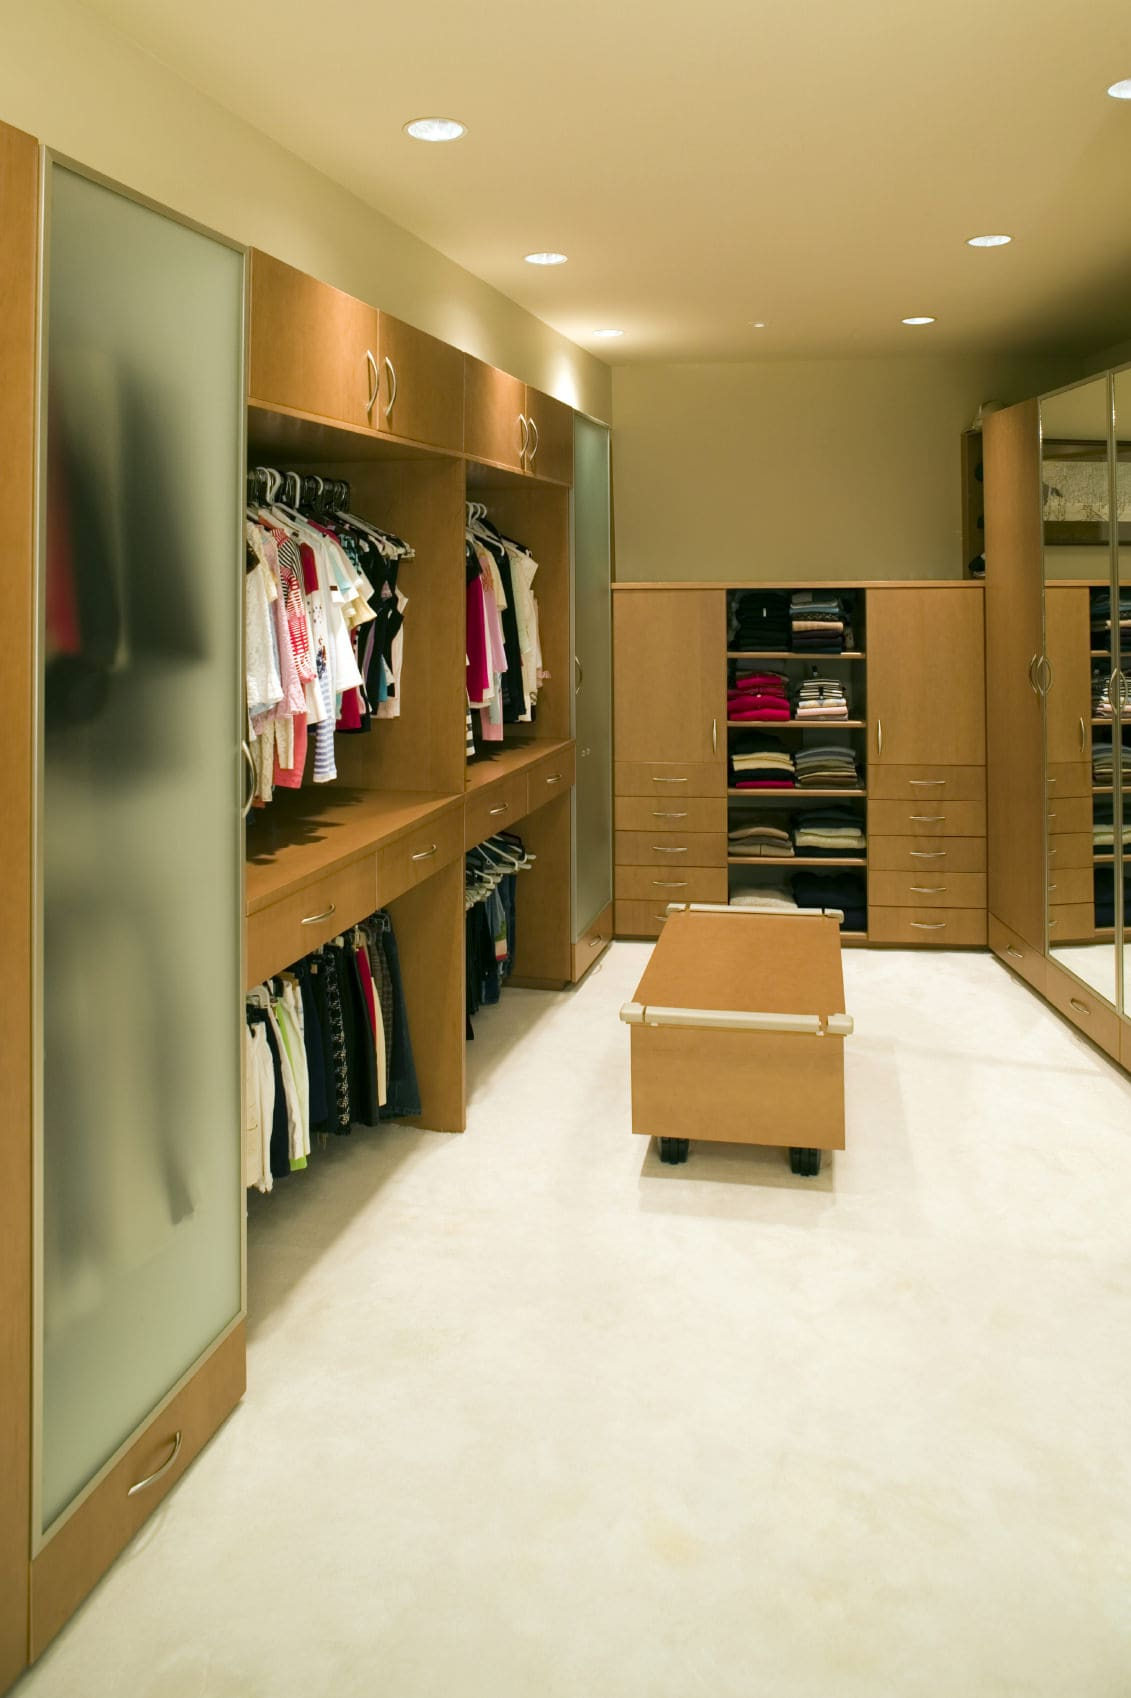 Wooden cabinets with mirrored and frosted glass doors surround a mobile seat over the beige carpet flooring. It is illuminated by recessed lights that are fitted on the regular ceiling.